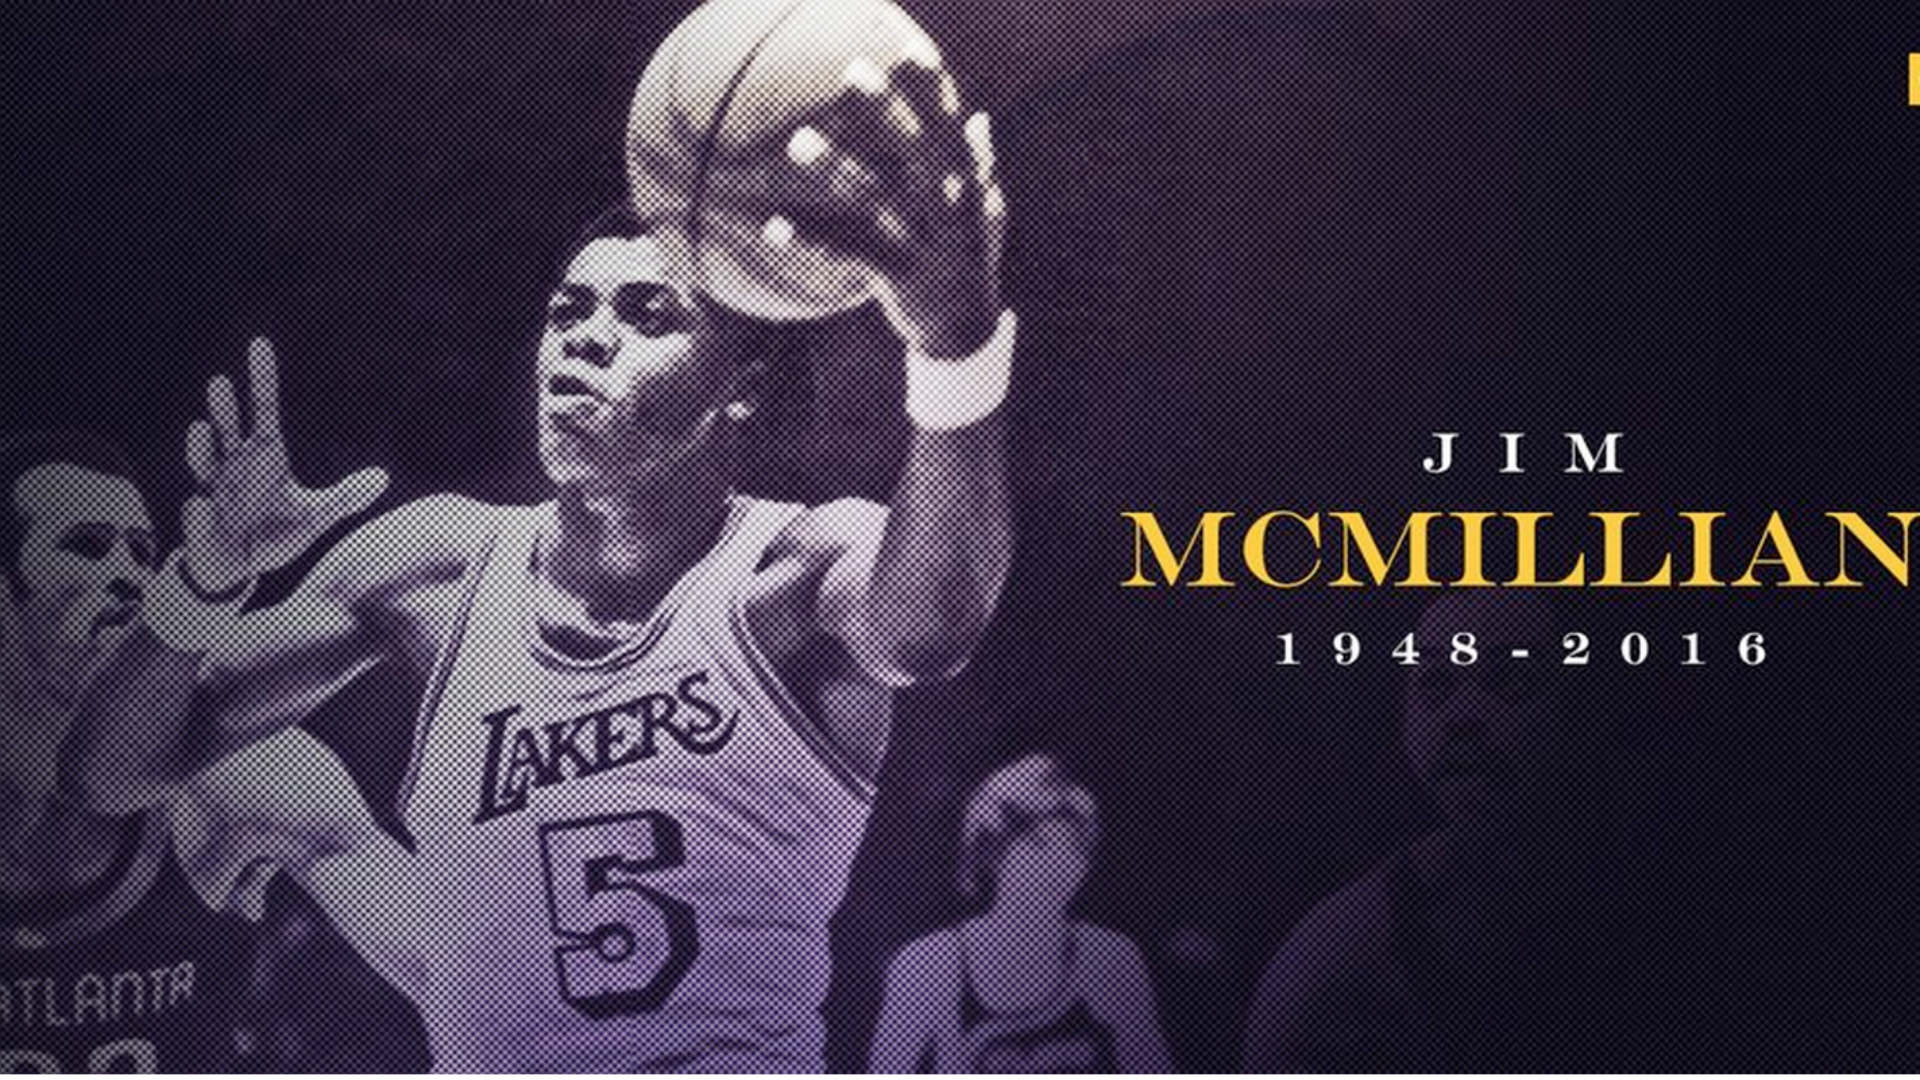 Former Laker Jim McMillian s at 68 NBA